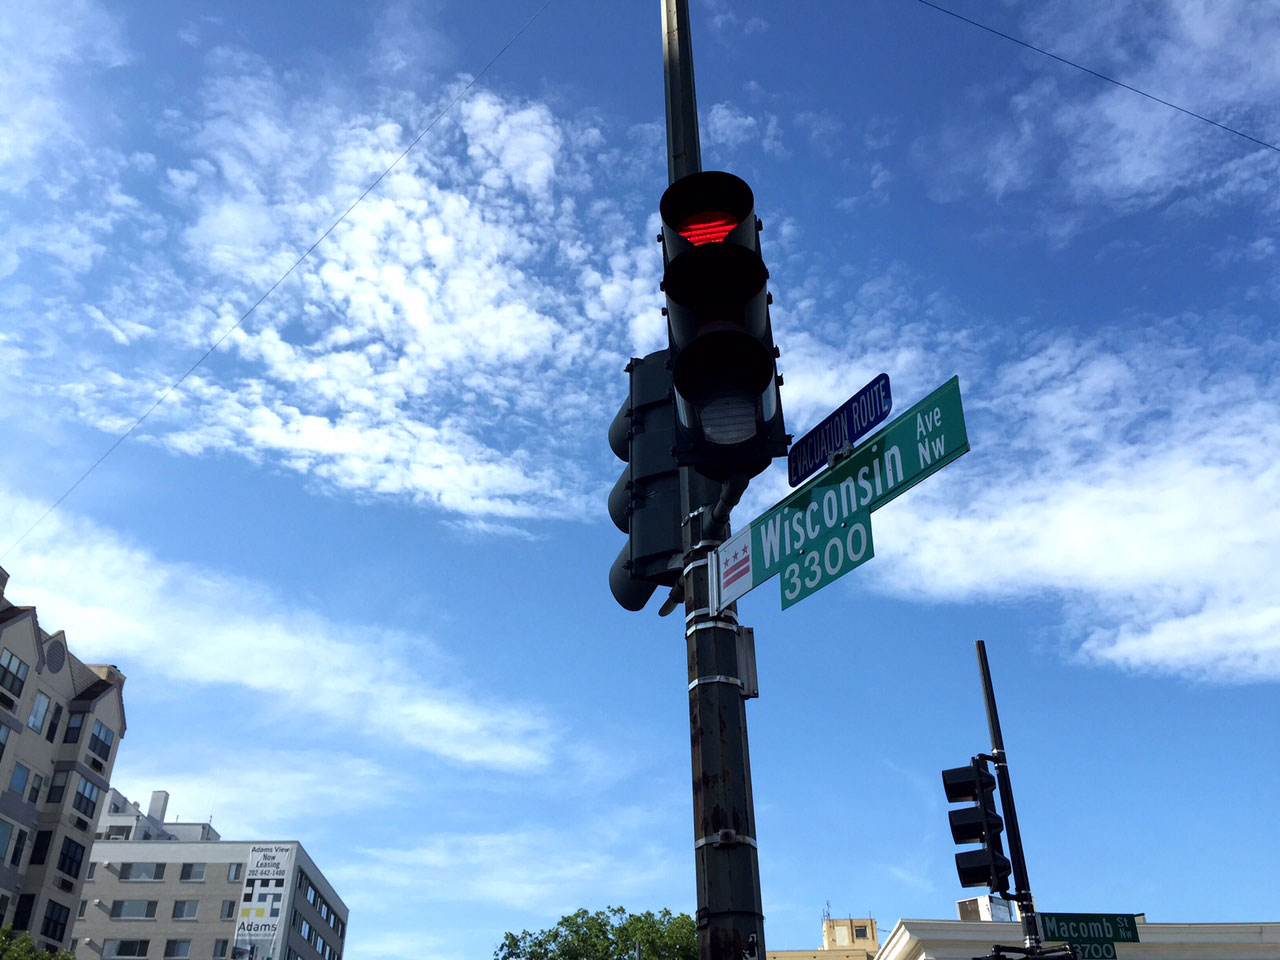 D.C. to audit traffic system security vulnerabilities